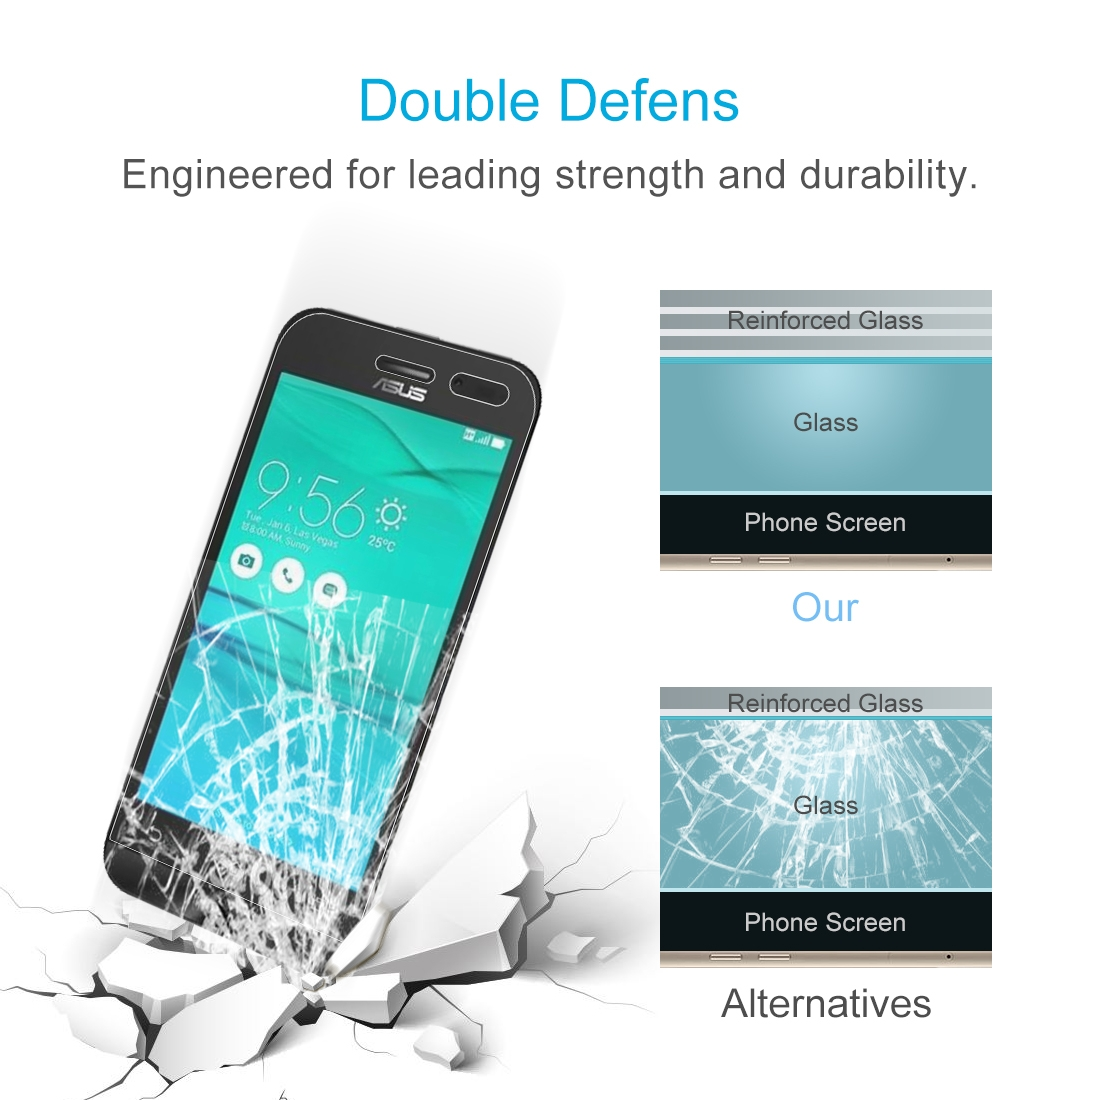 026mm 9h 25d Tempered Glass Film For Asus Zenfone Go Zb452kg Mpsg9738a 5